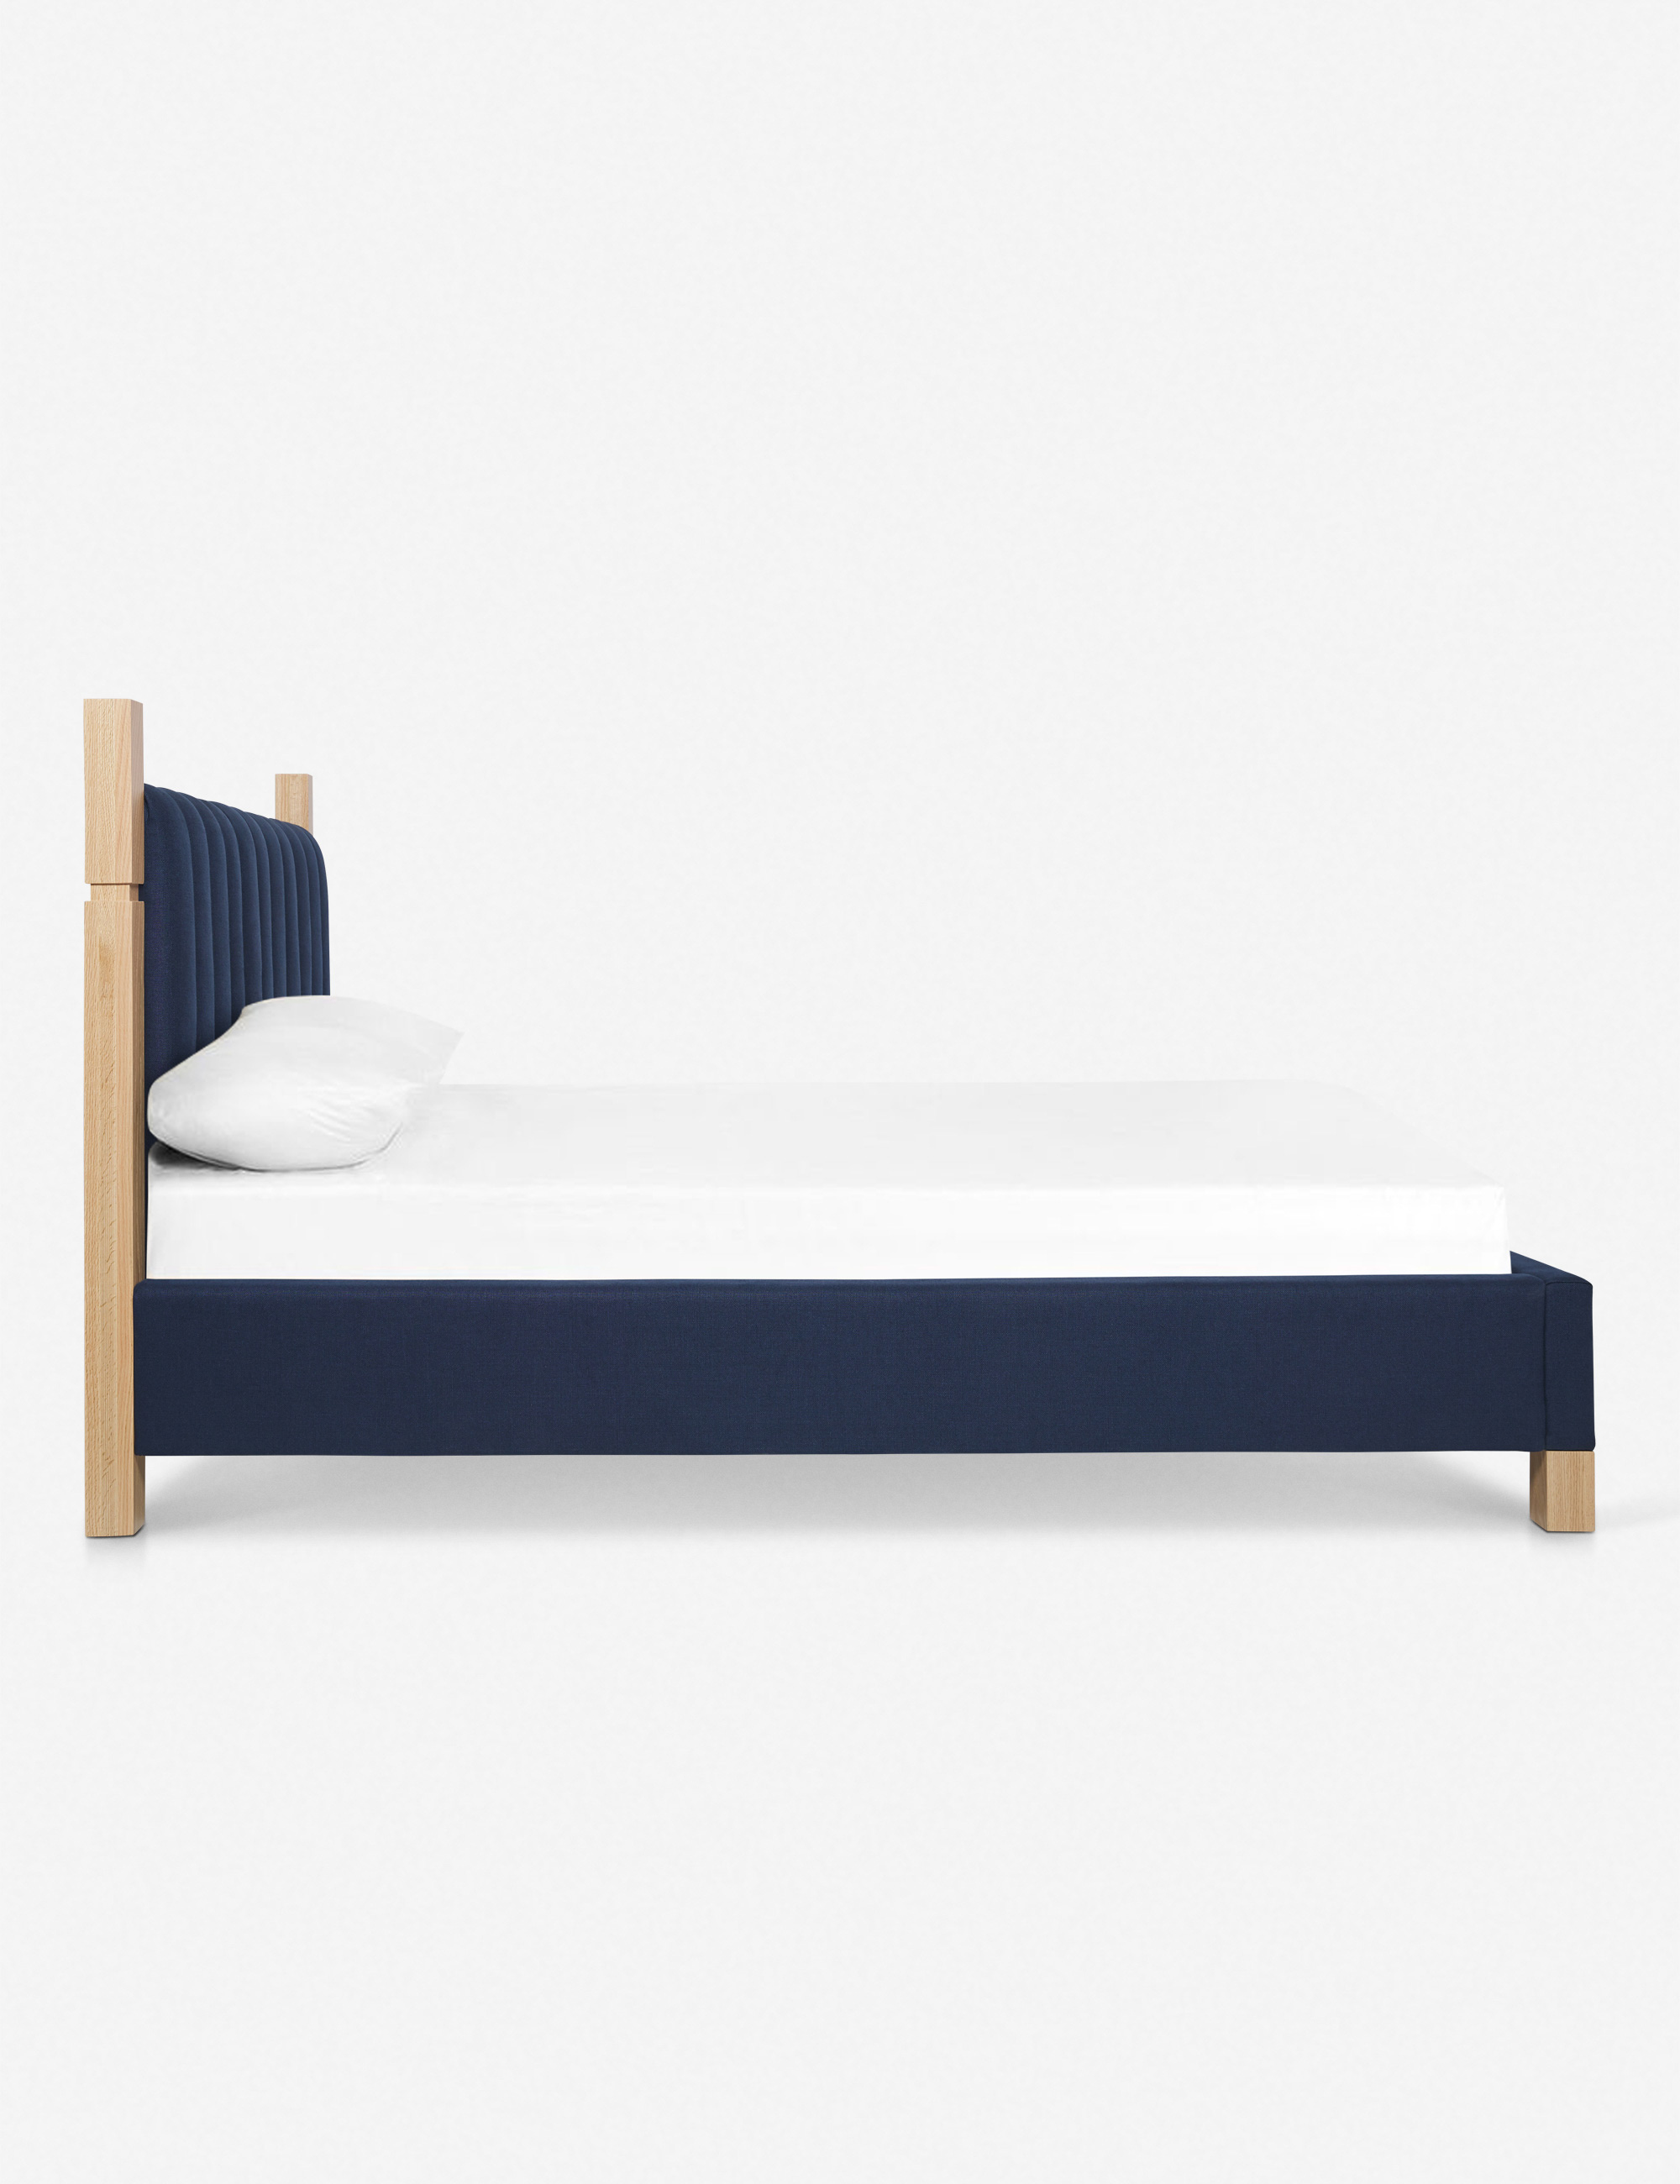 GINNY_MACDONALD_Ambleside-Bed-Linen-Dark-Blue-4